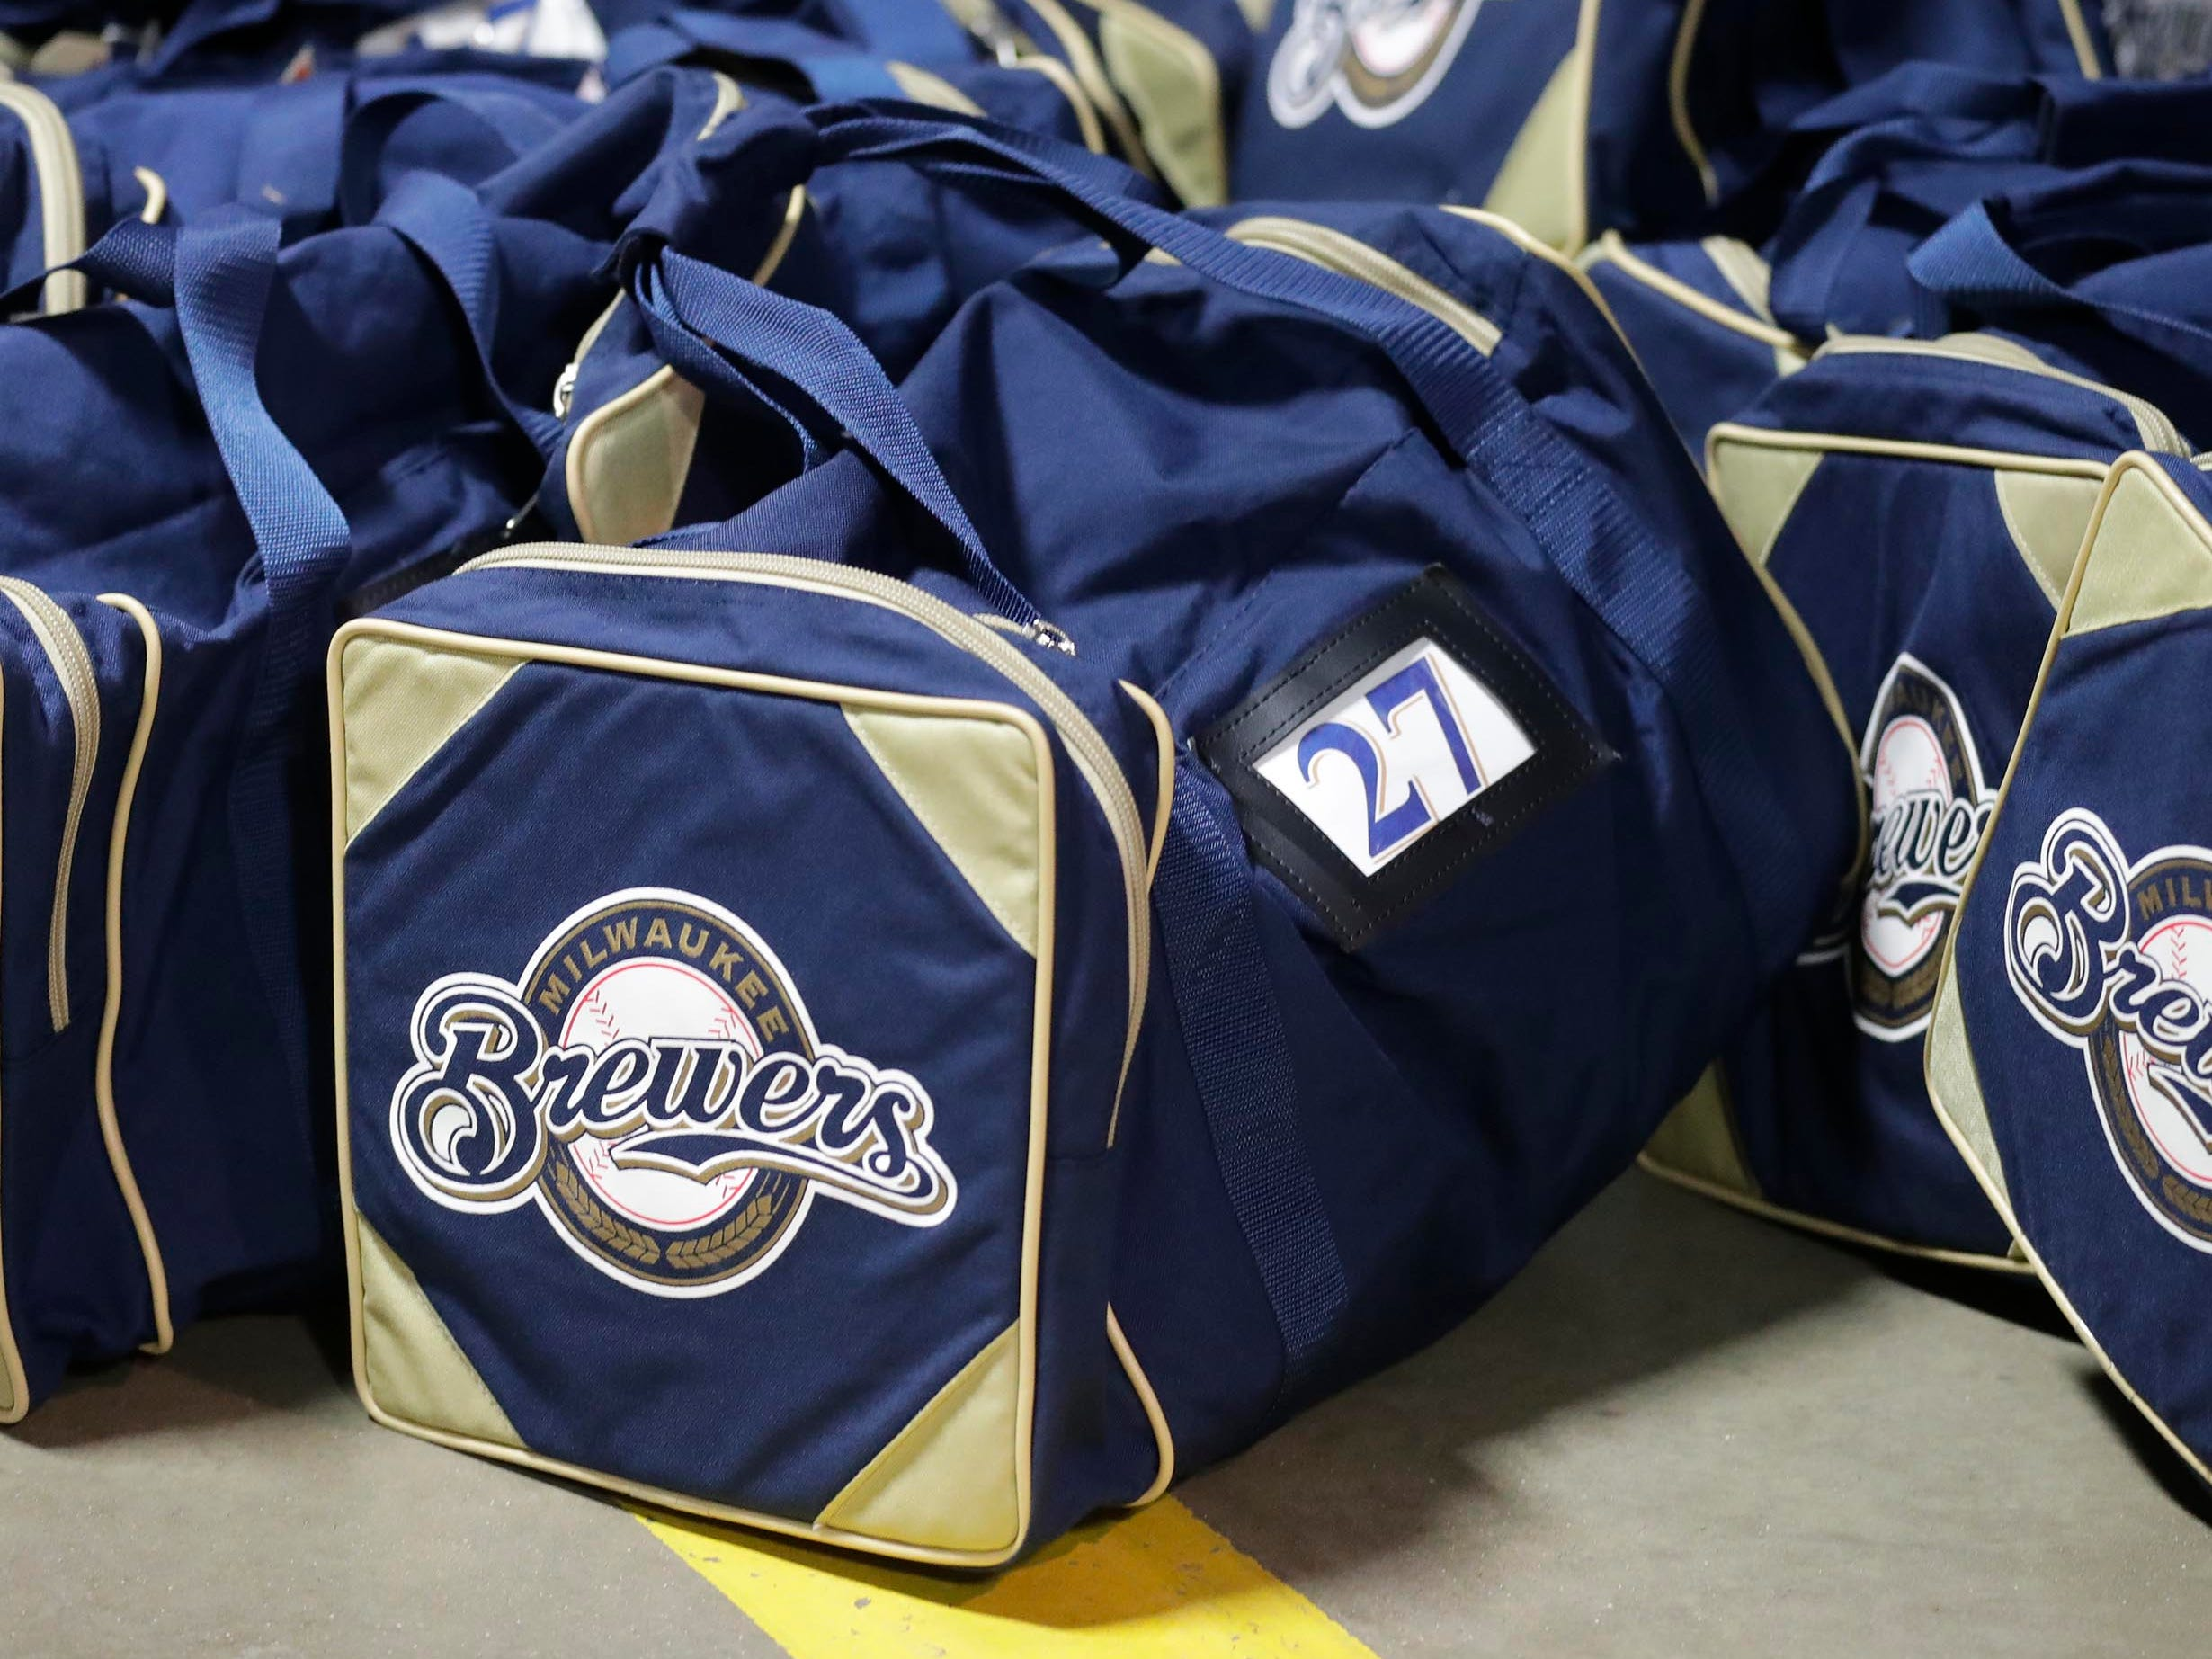 These bags will be loaded on a semi-trailer bound for spring training in Arizona.